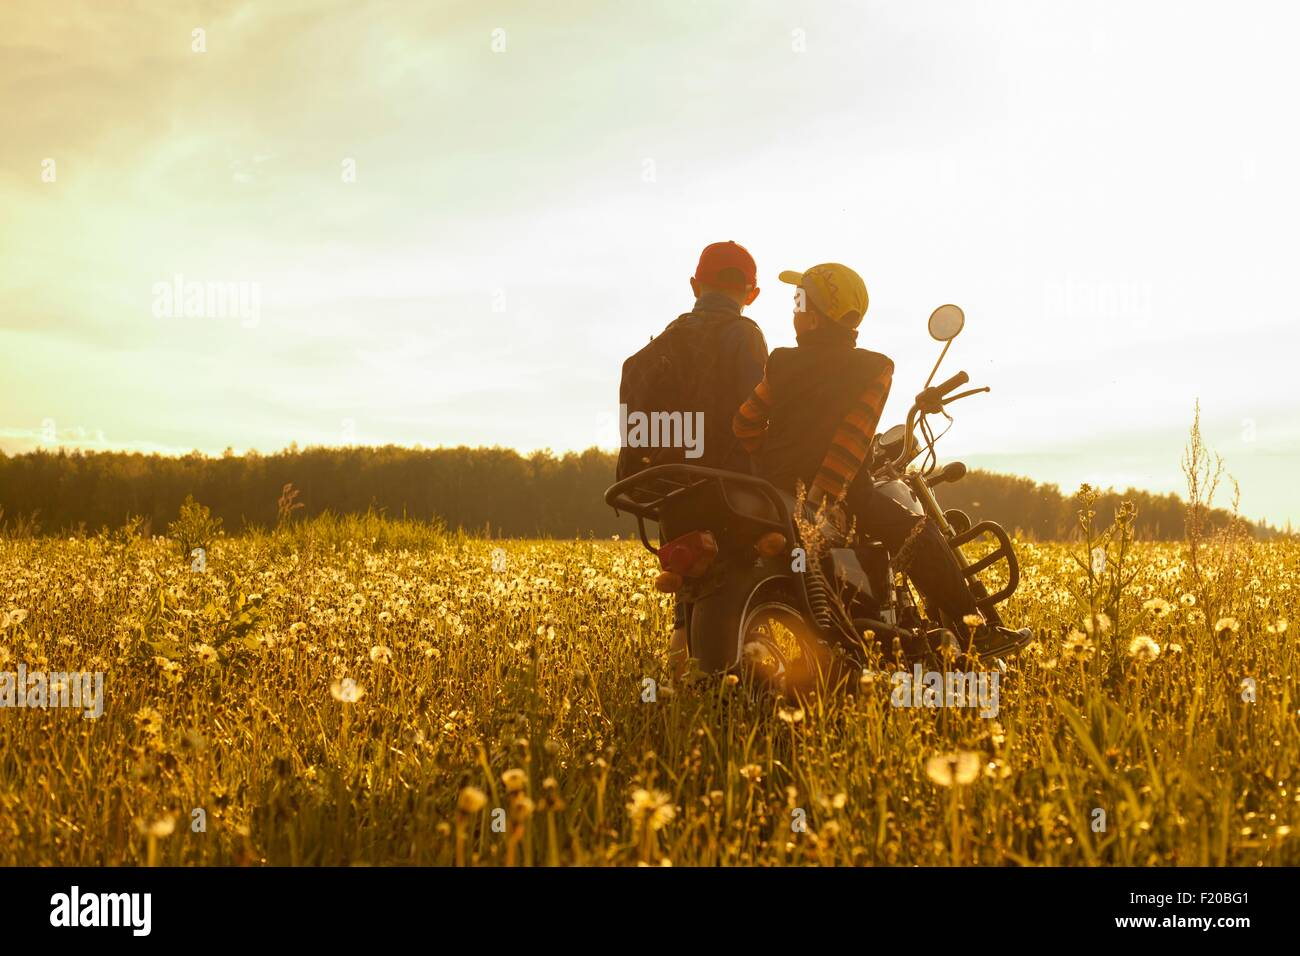 Two young boys, sitting on motorbike, in field, rear view - Stock Image